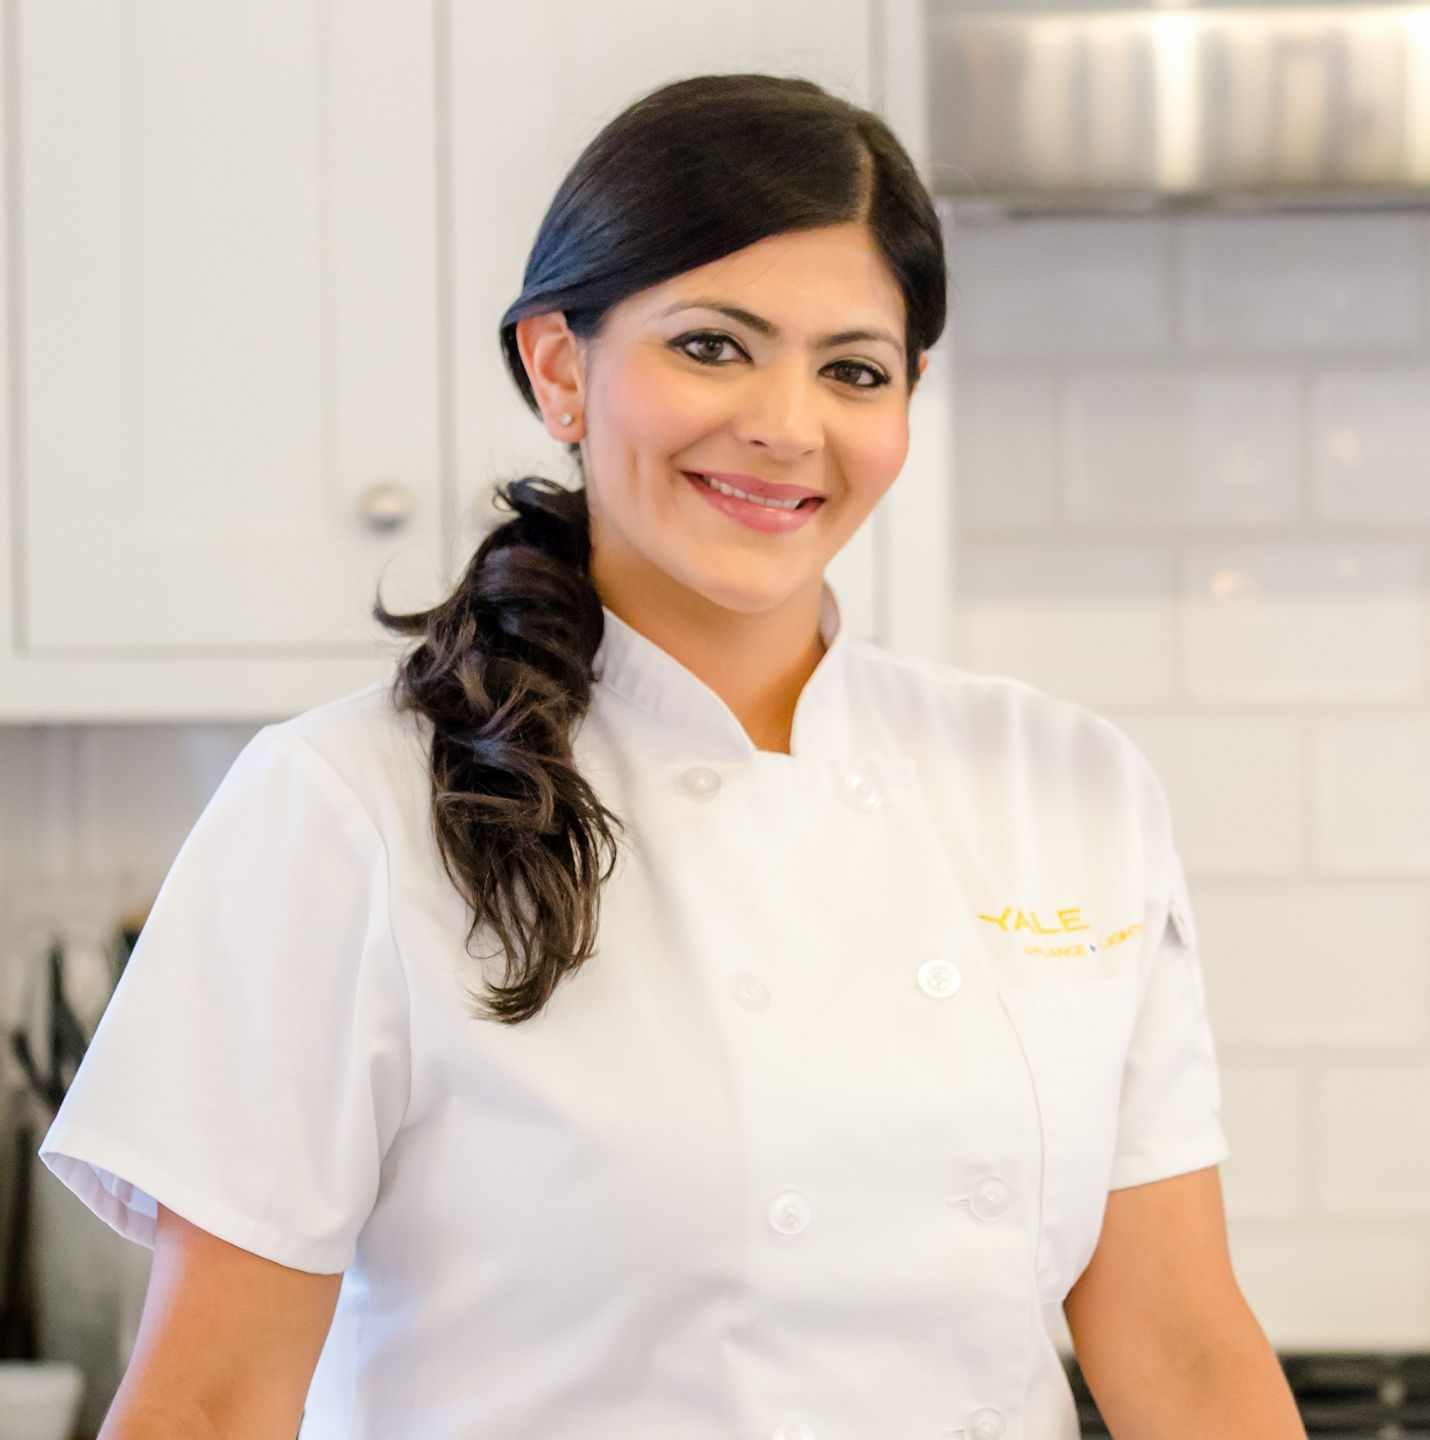 Framingham-born cook and food TV personality Saba Wahid stands in a kitchen in her chef's whites, smiling as she looks directly into the camera